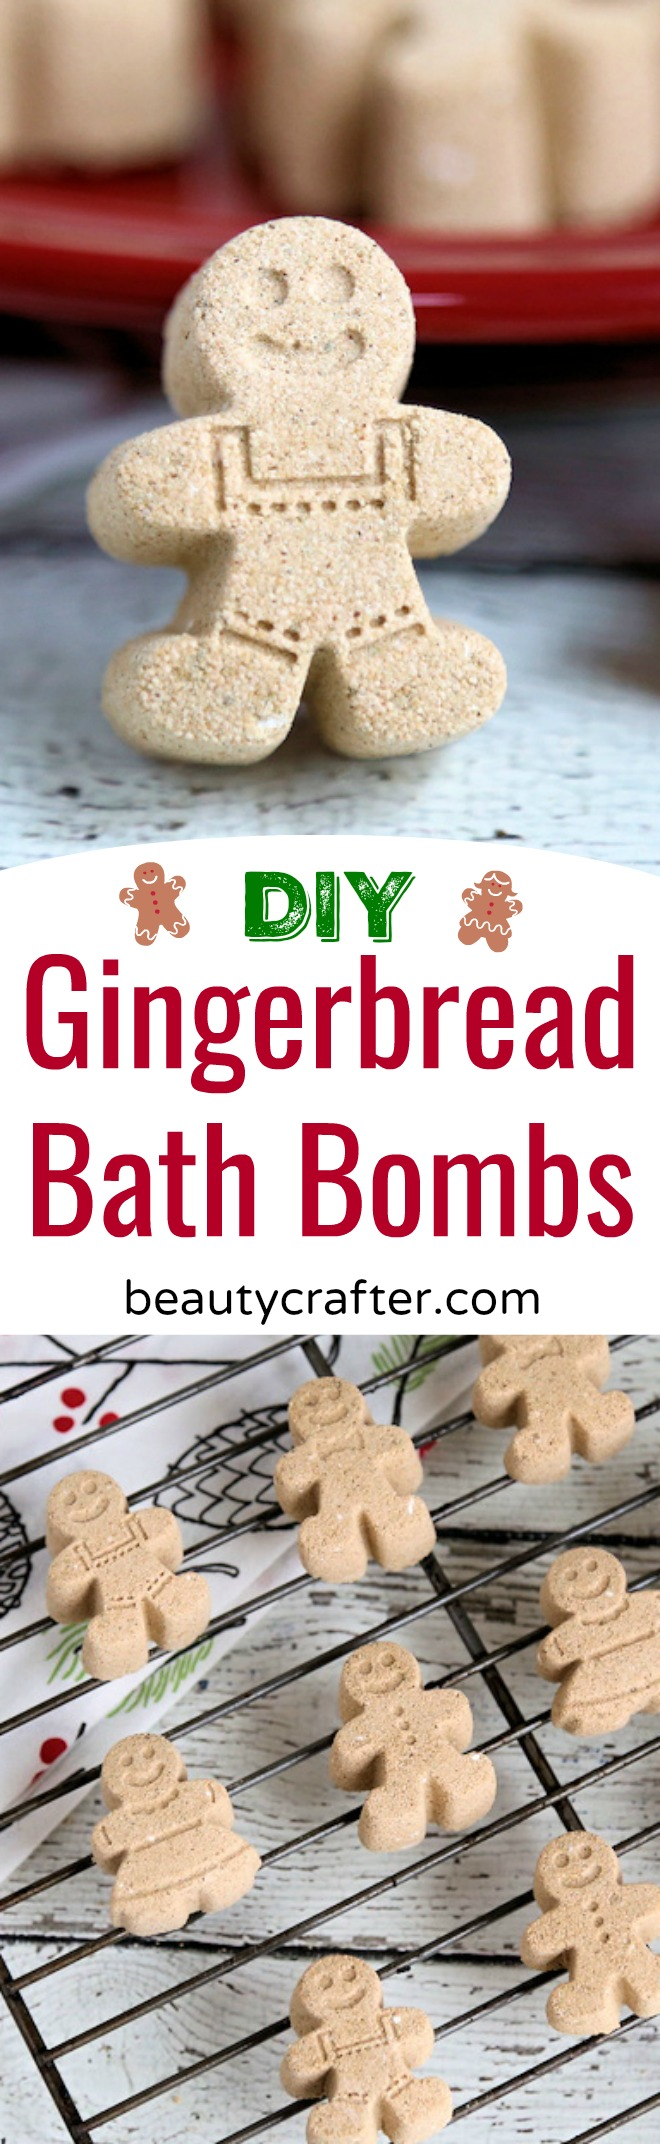 Gingerbread Bath Bomb recipe -- cute DIY Christmas bath bombs. Make a great homemade gift. #Christmas #gingerbread #bathbombs #diygift #holidays